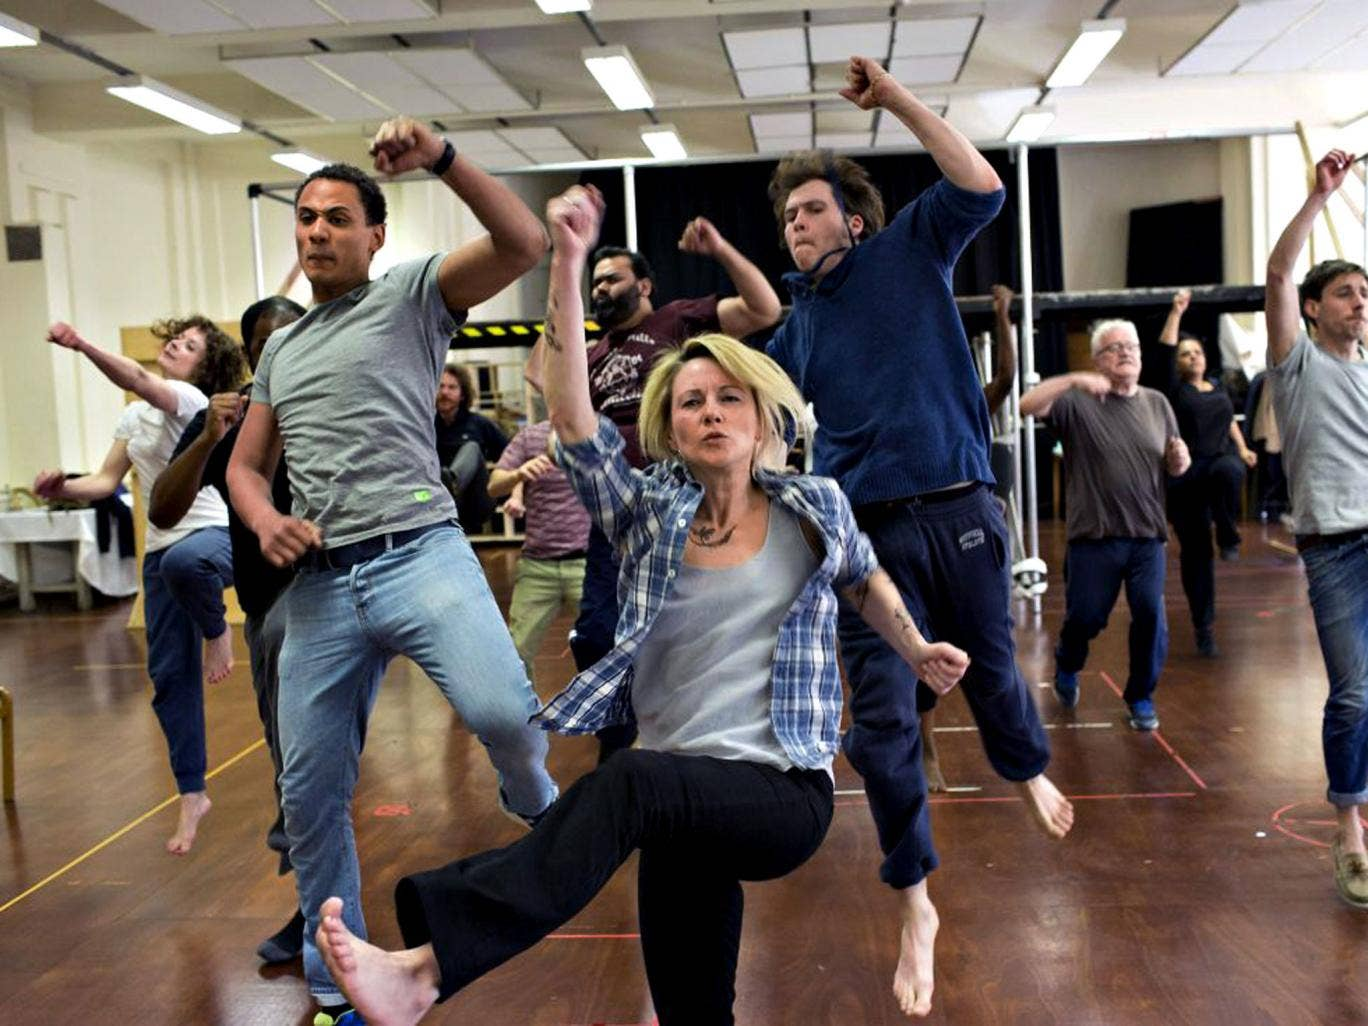 Getting her kicks: Lisa Dillon in rehearsals for 'The Roaring Girl'